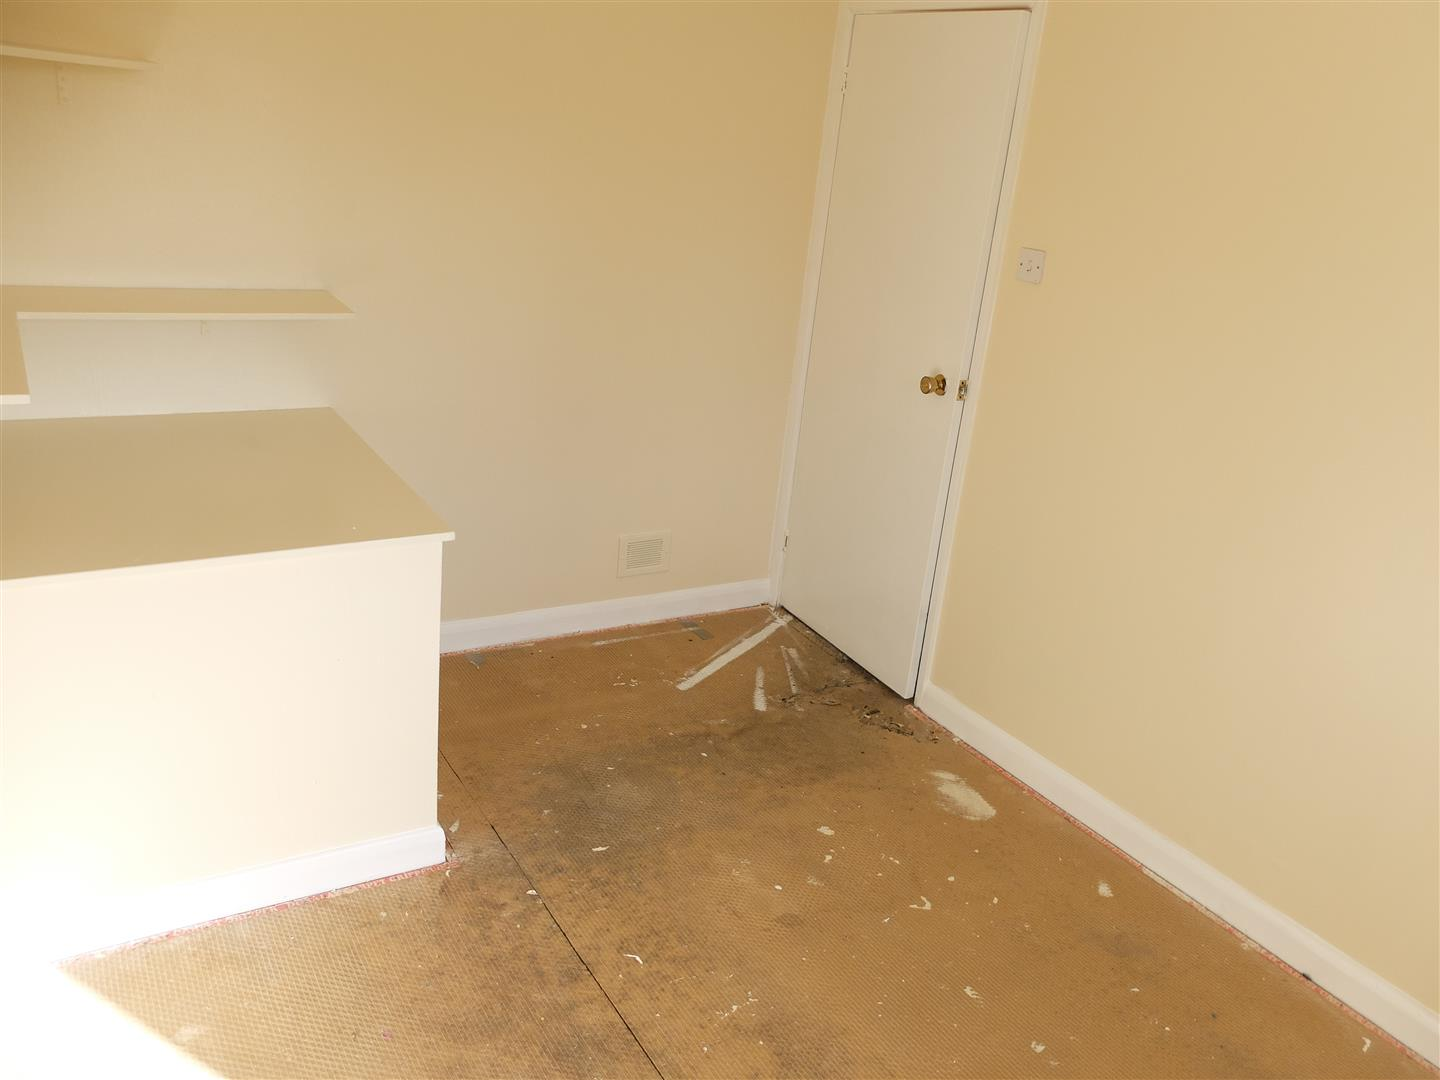 3 Bedrooms House - Mid Terrace For Sale 7 Almery Drive Carlisle 95,000